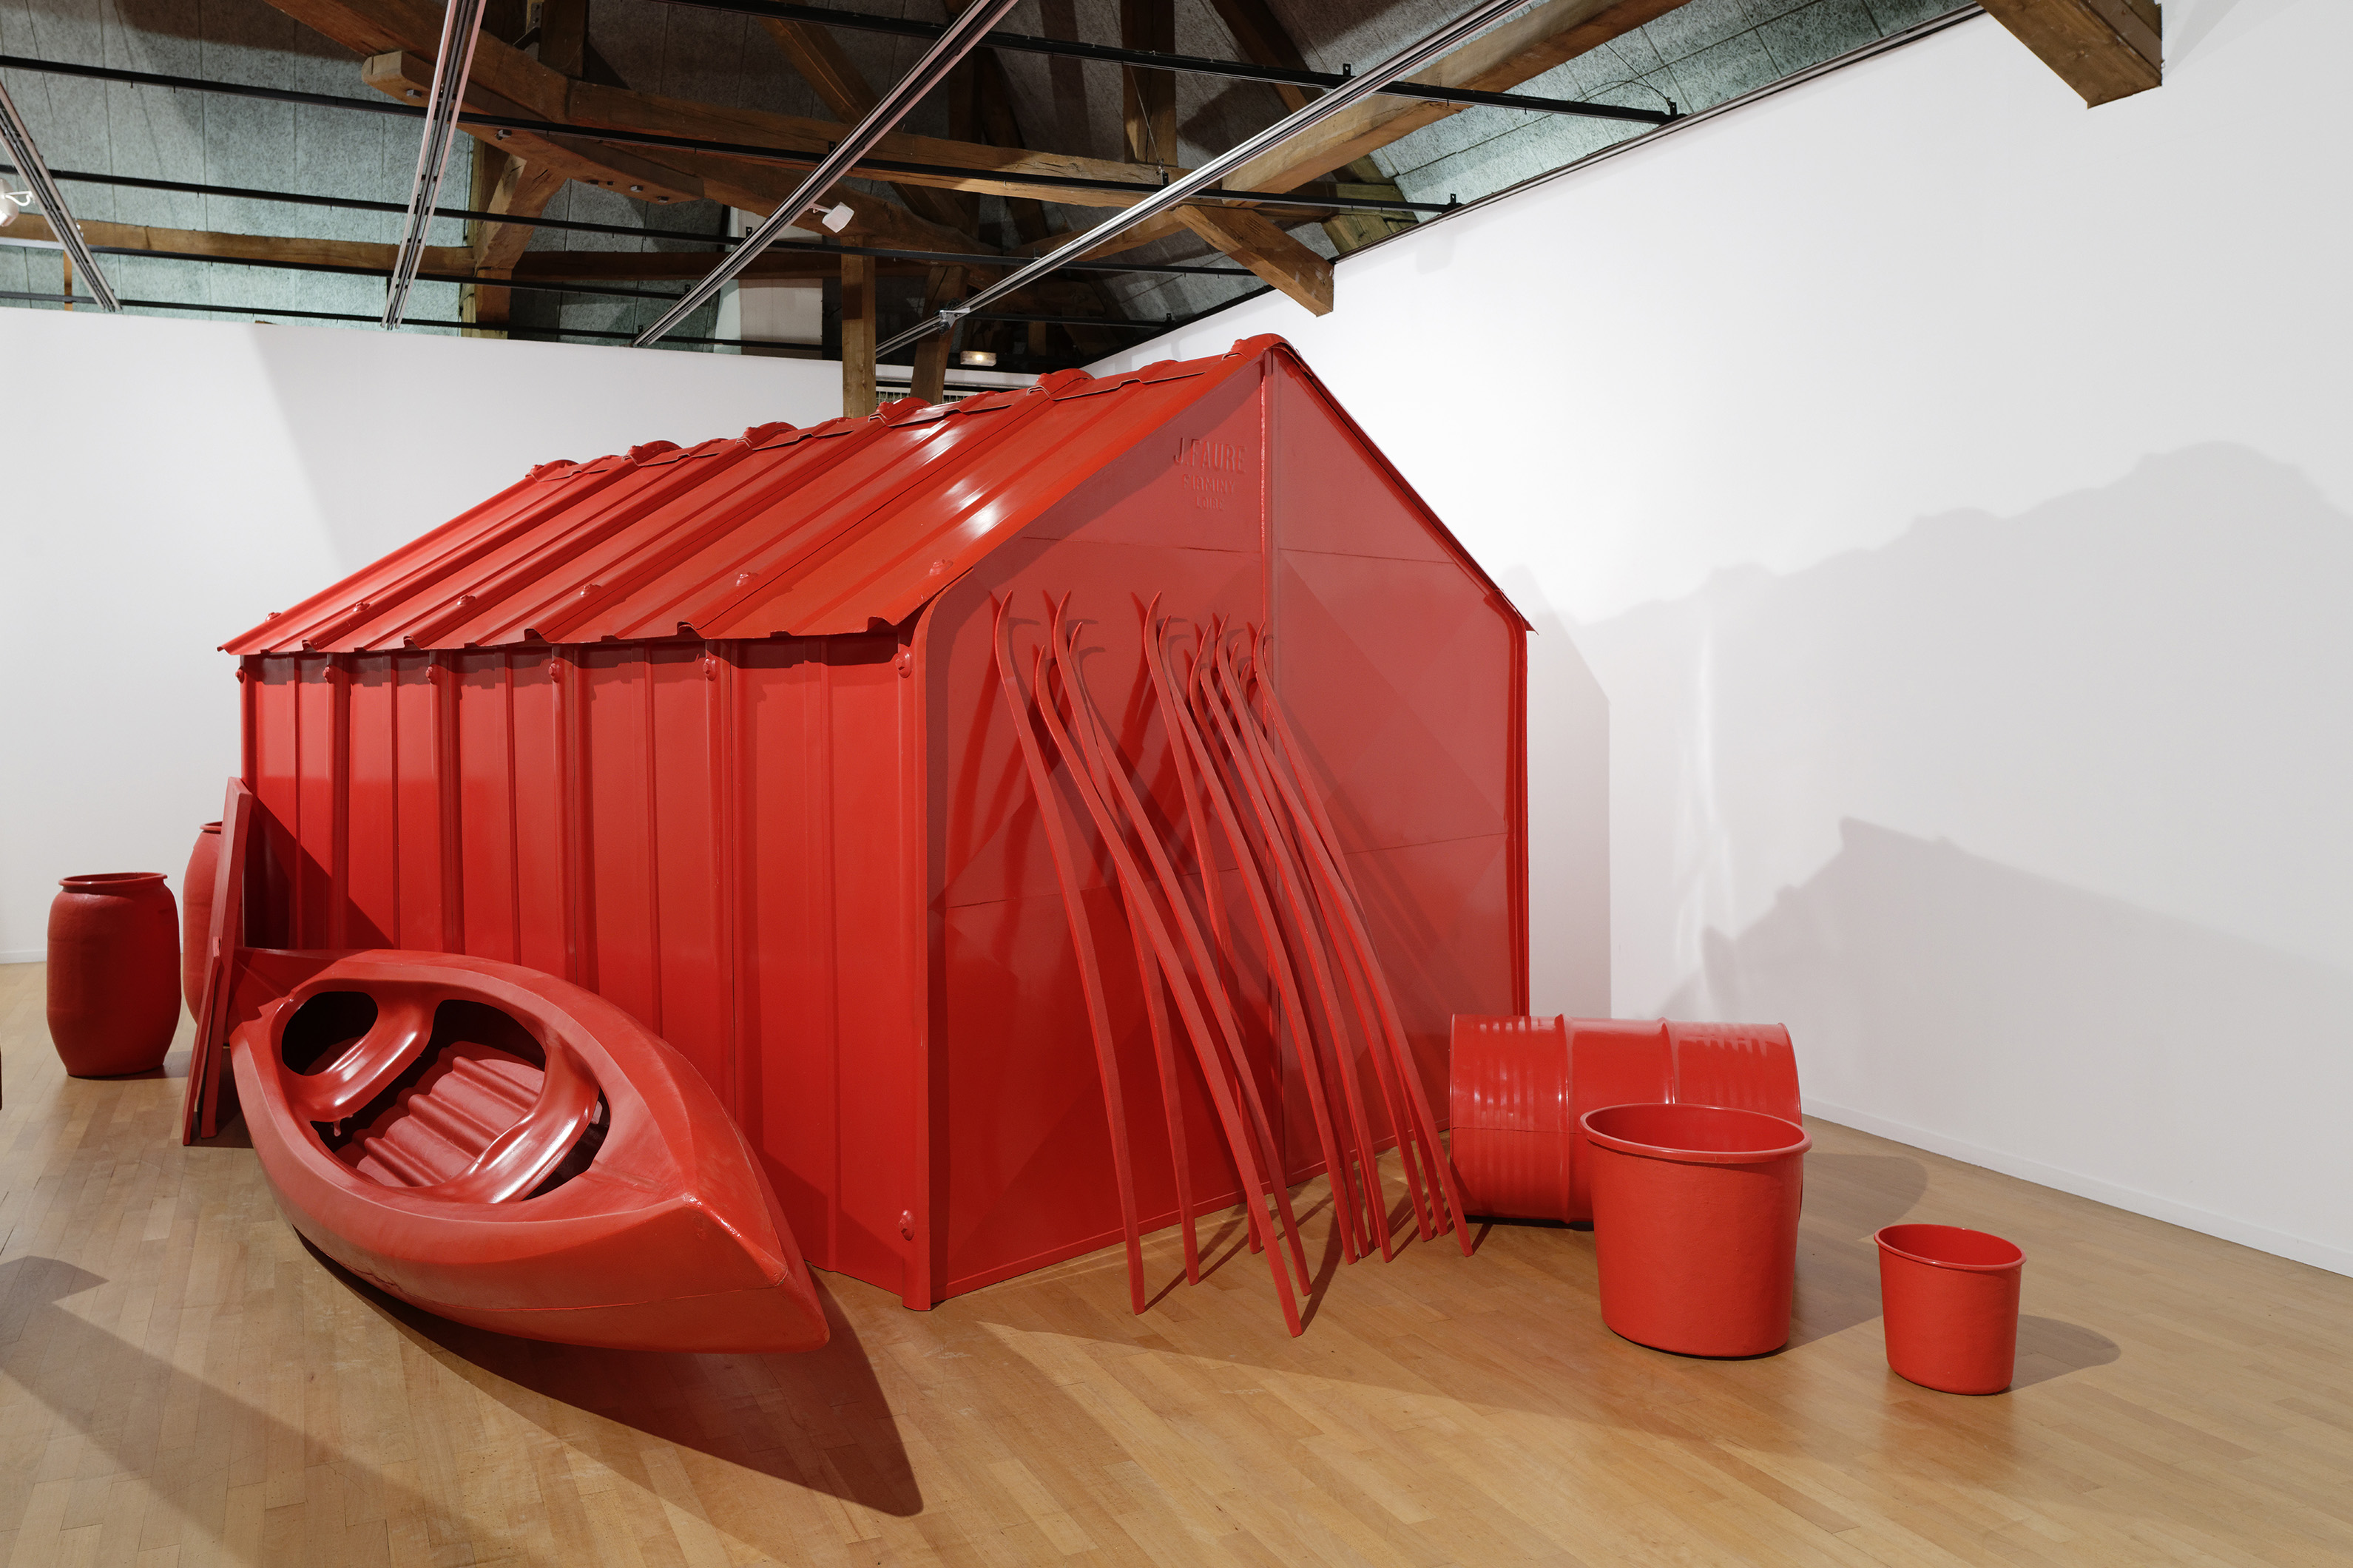 © Etienne Bossut Ma cabane, 1996-1997, moulage en polyester rouge coquelicot